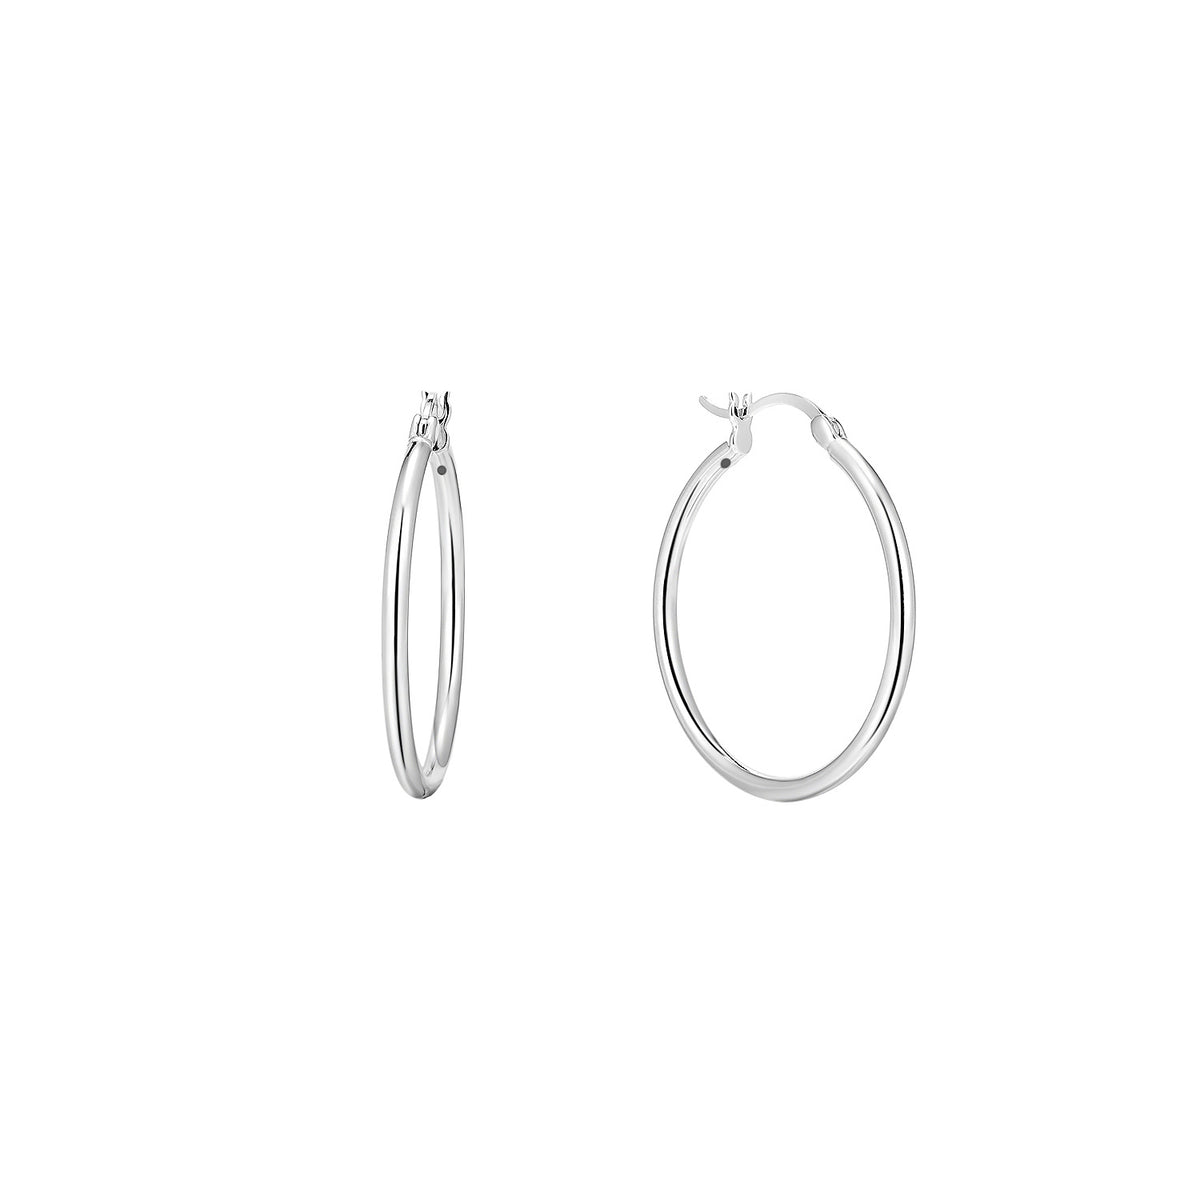 Magna | Toddler Hoop Earrings | White Rhodium Plated 925 Silver